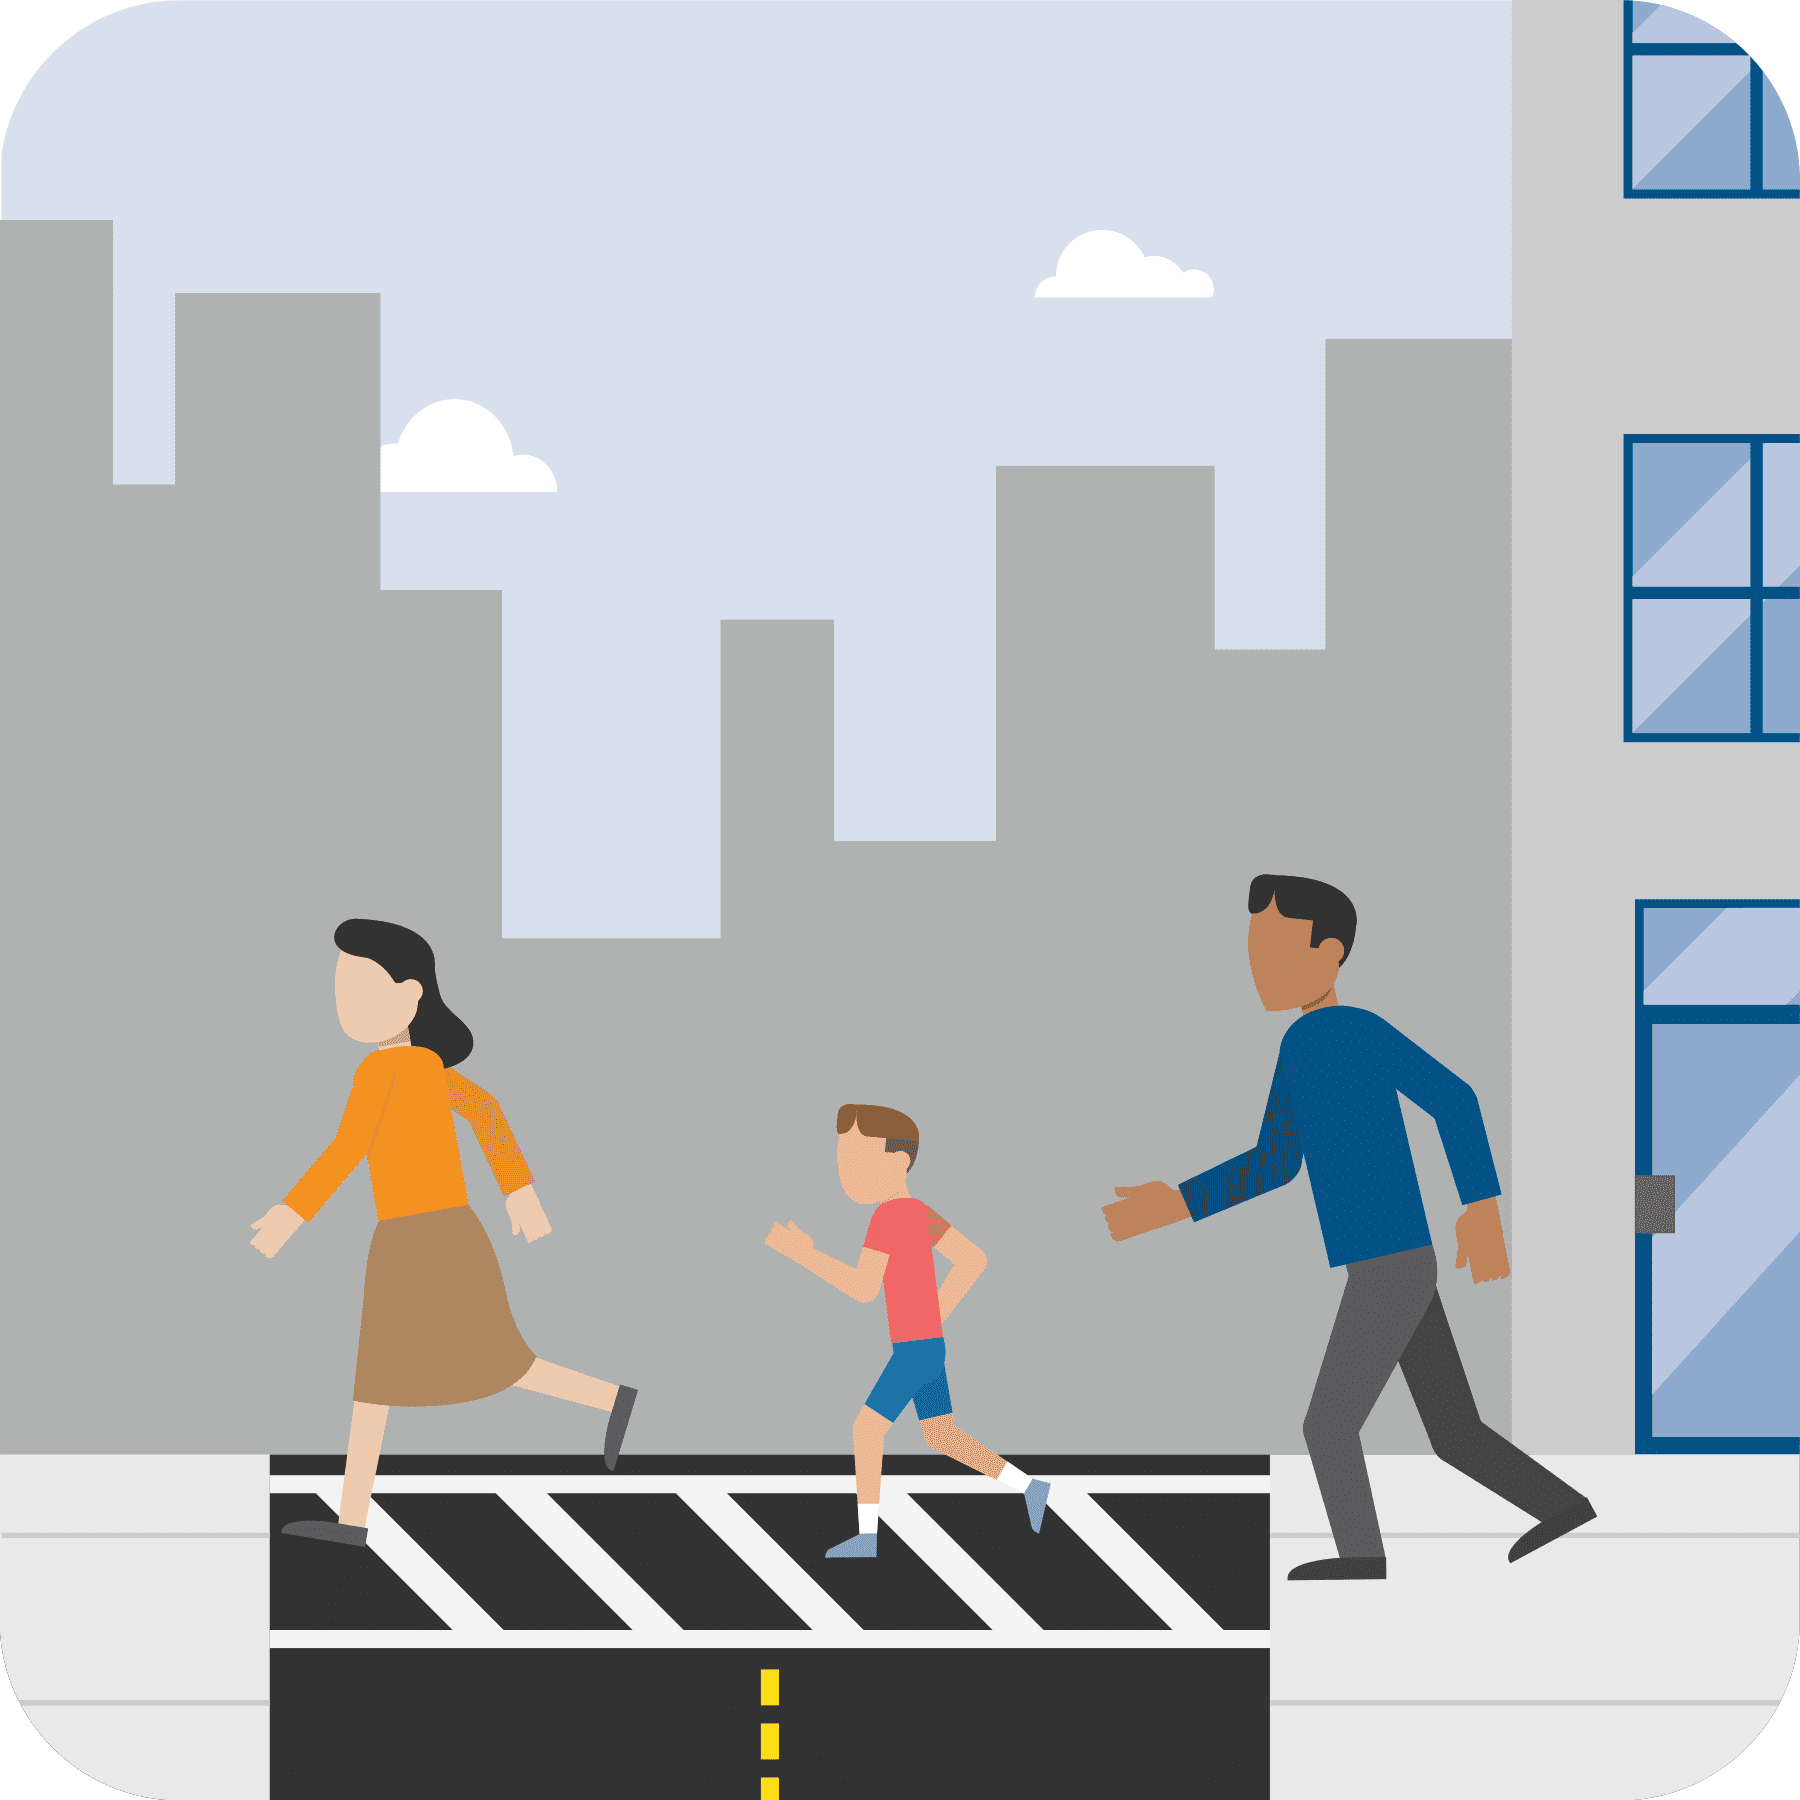 Family crossing the street to their safe meeting place.